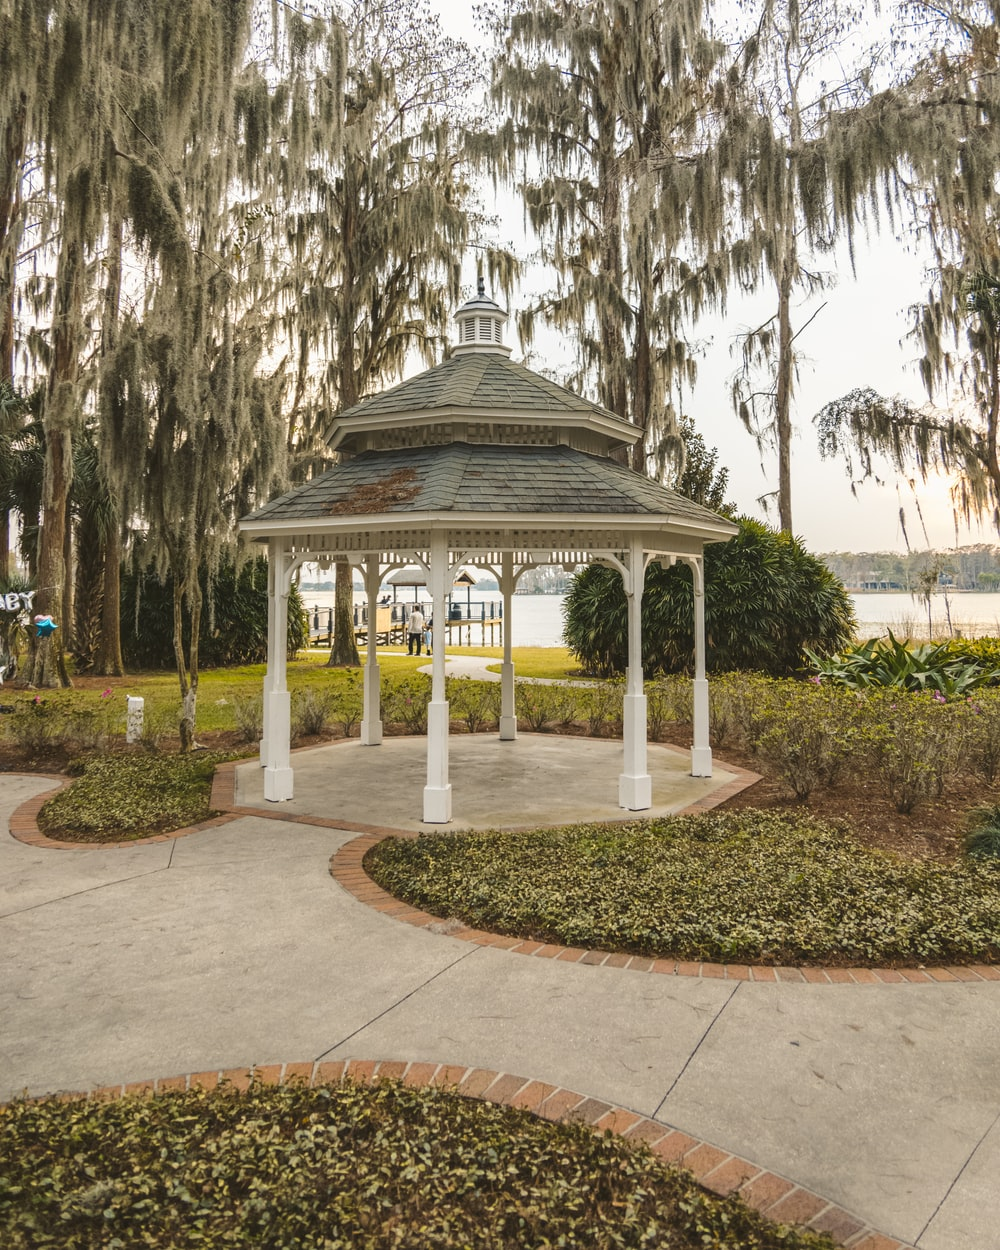 white and black gazebo surrounded by trees during daytime